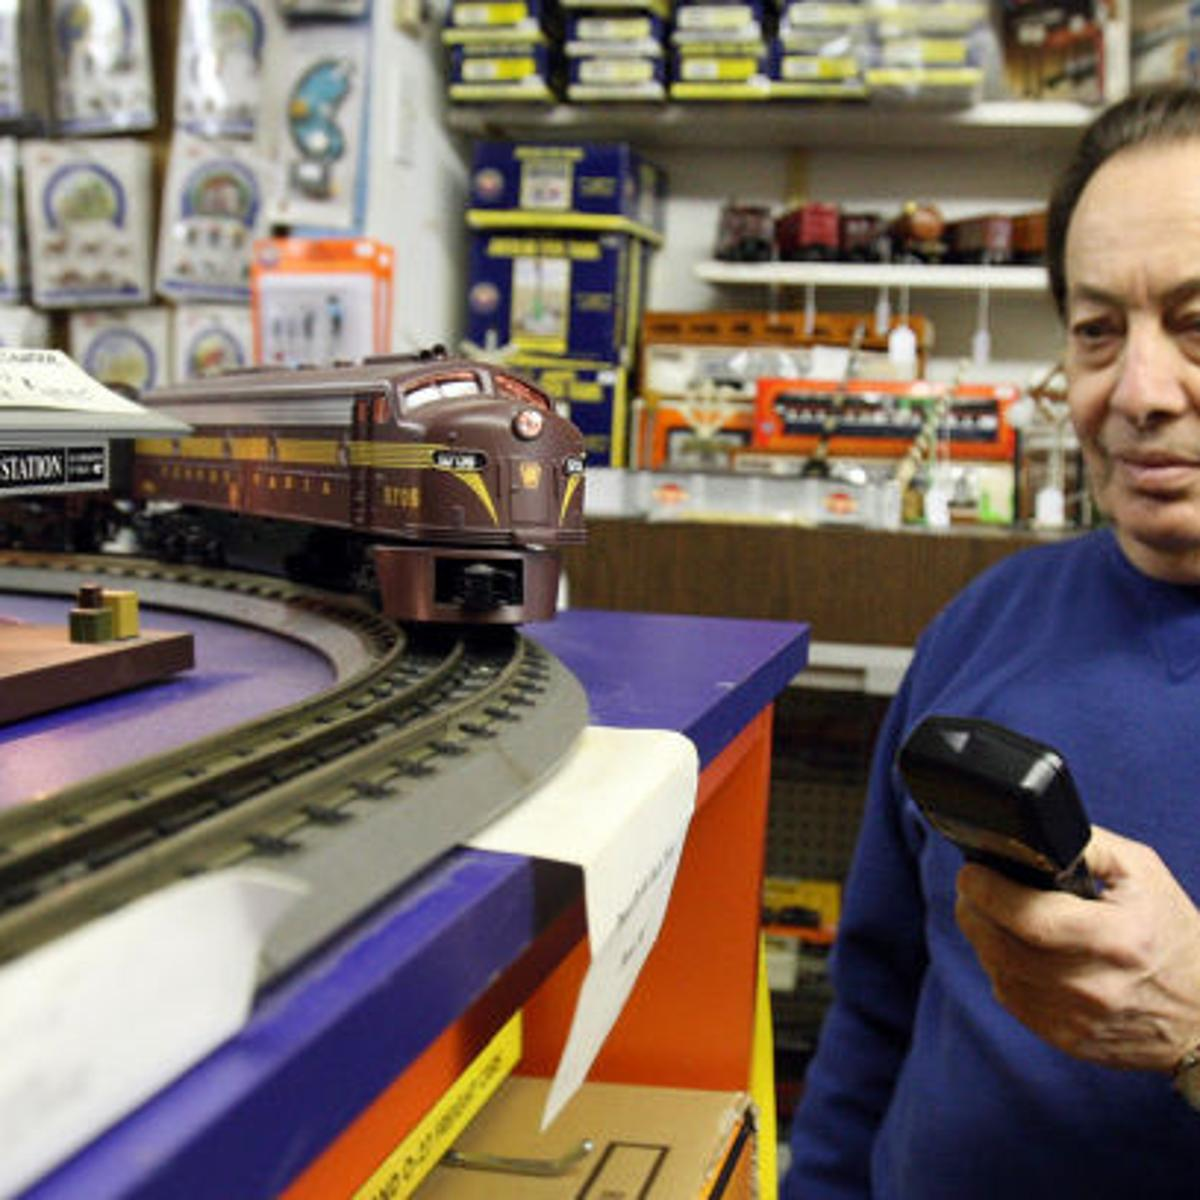 Model-train enthusiast doing well with Wildwood hobby store